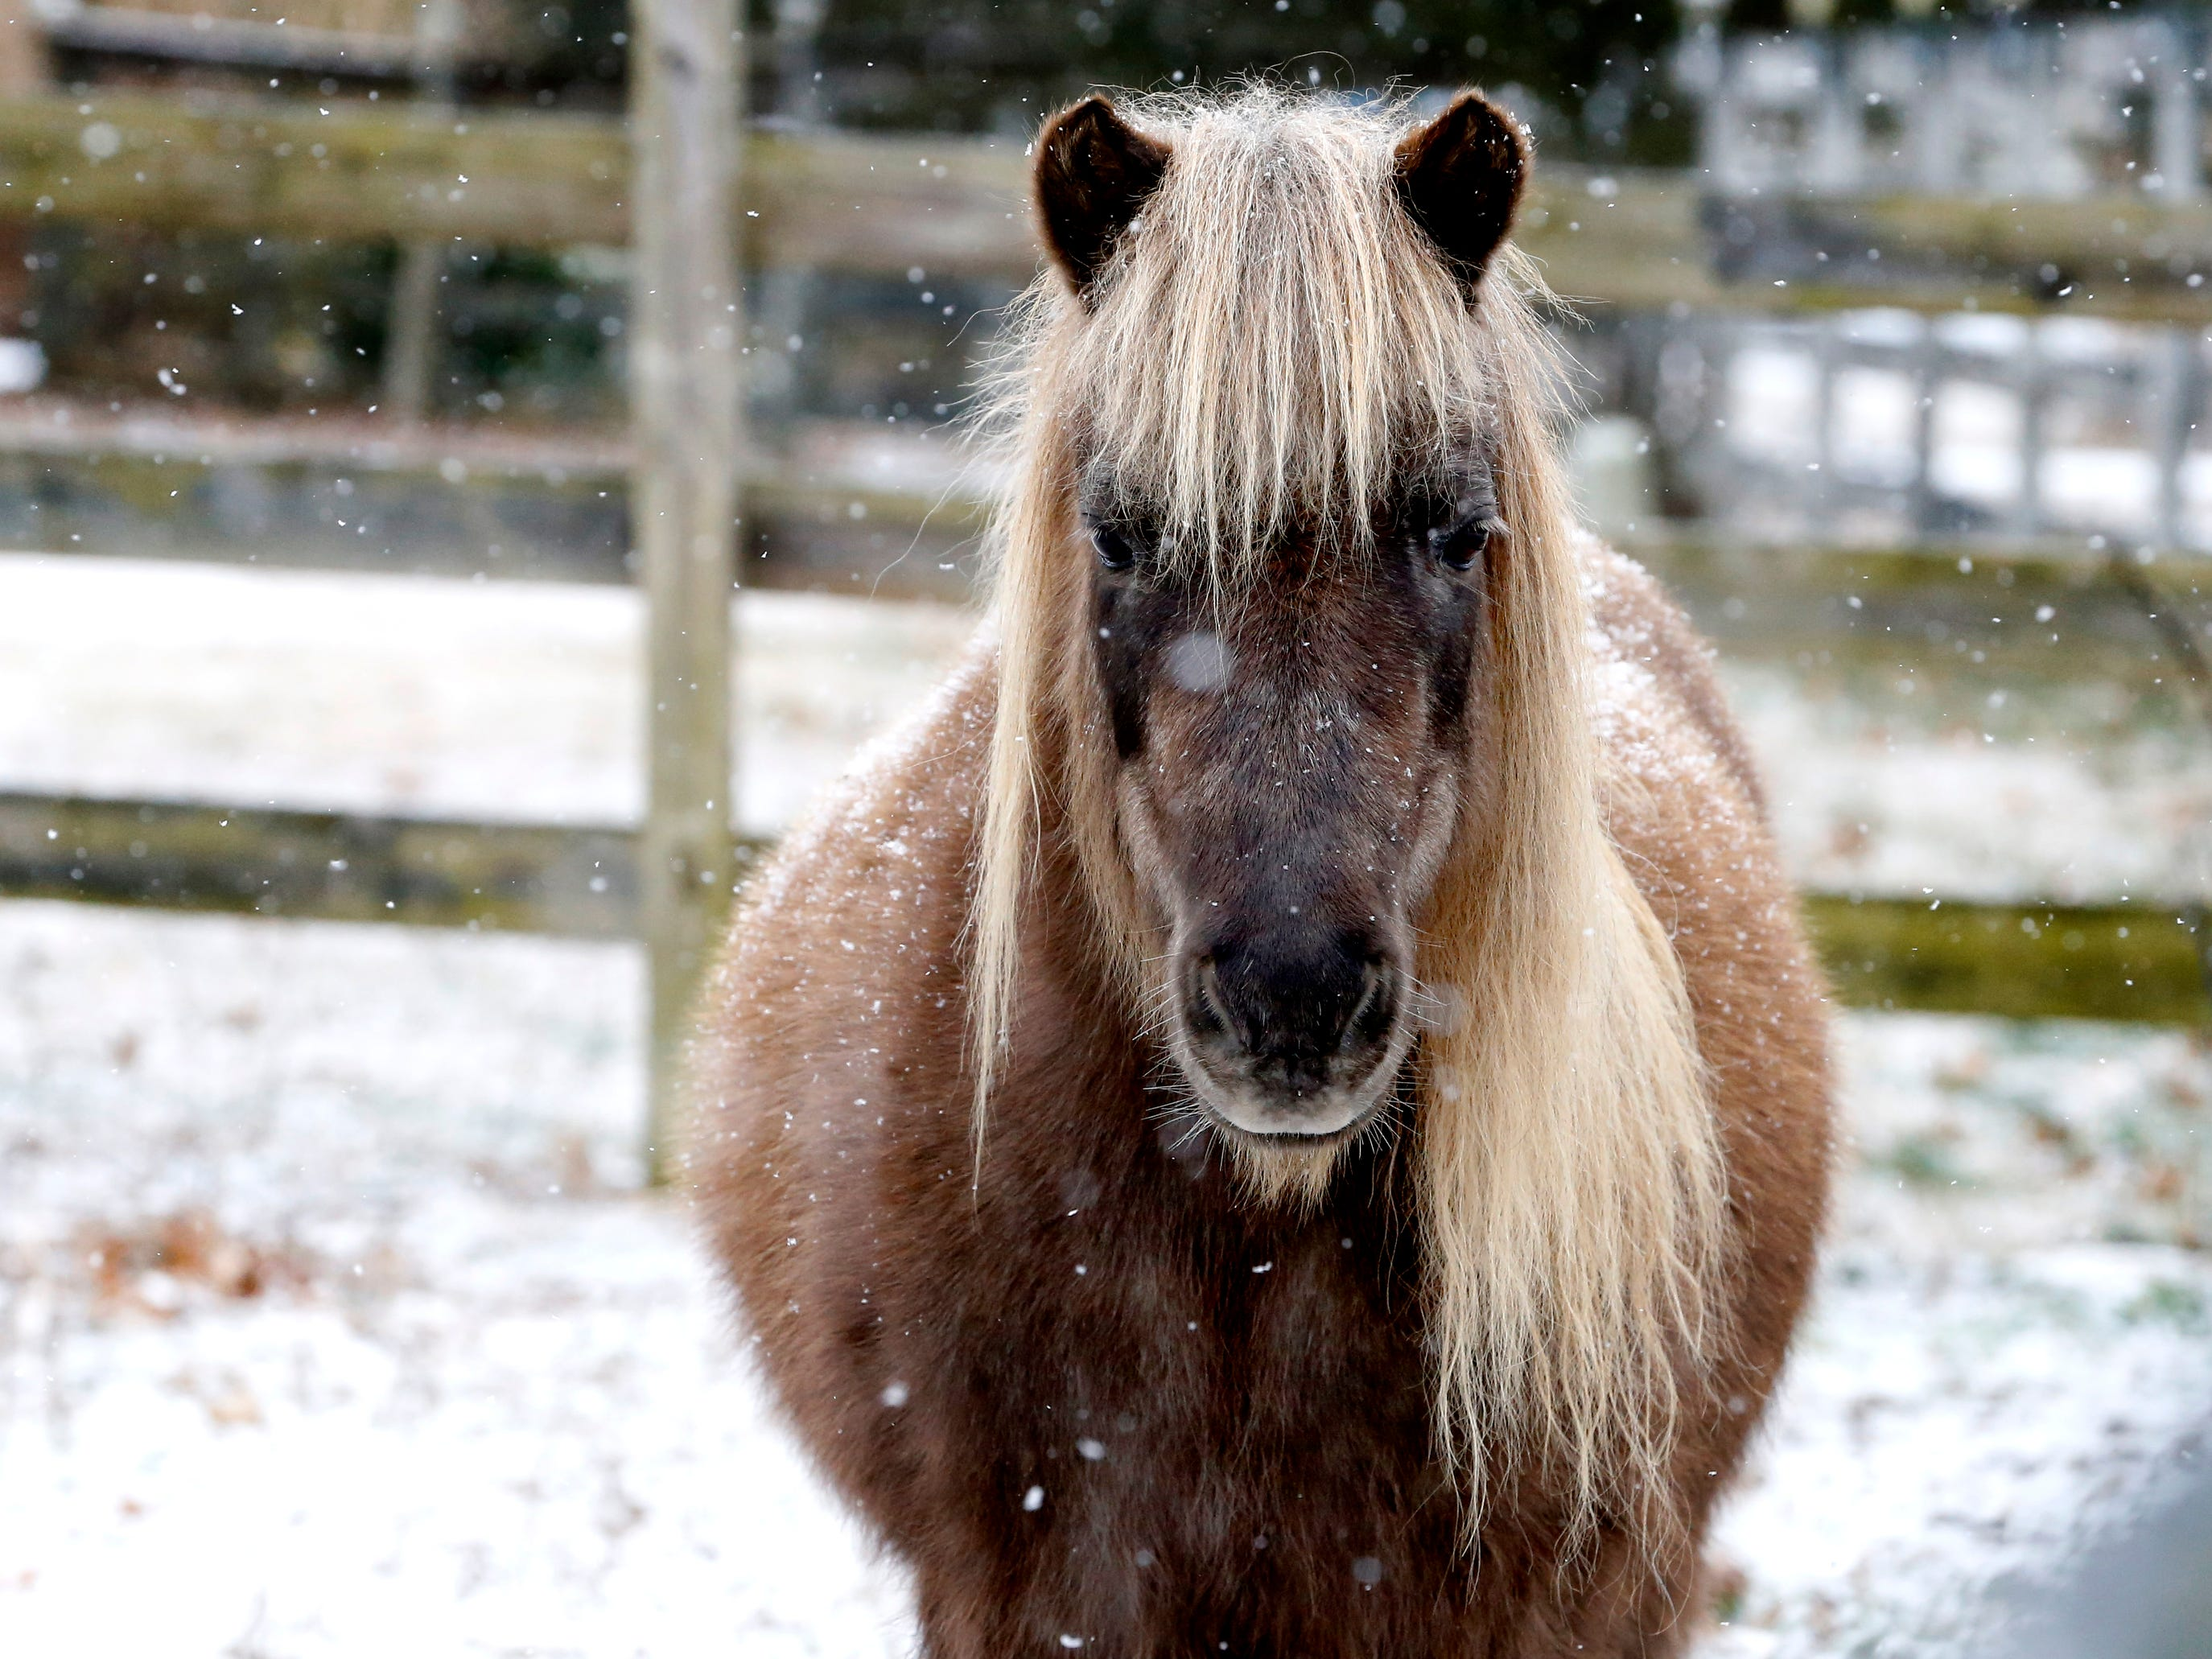 A pony watches the snow fall around him near Barfield Crescent Park on Wednesday morning, Jan. 30, 2019.